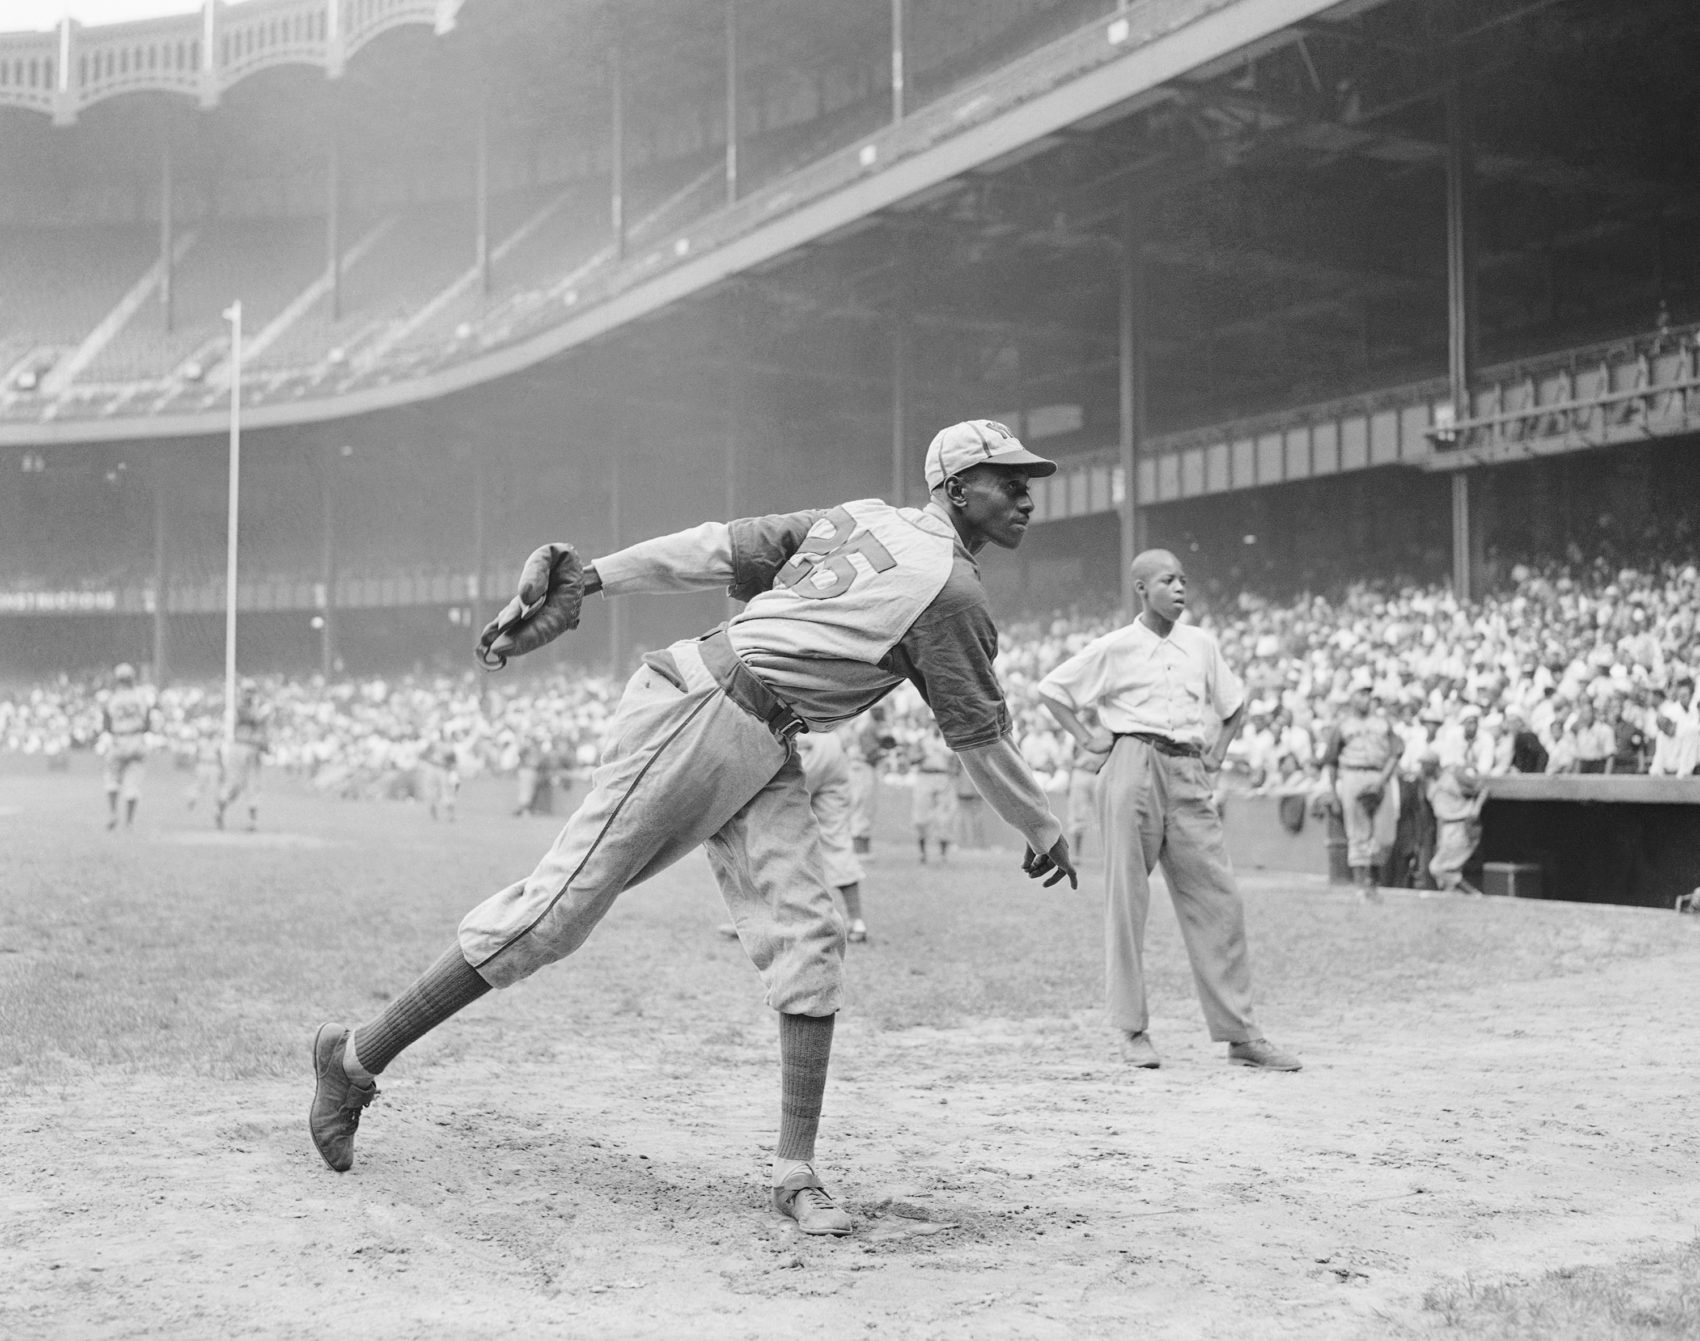 Satchel Paige, The House Of David, And A Decades-Old Mystery